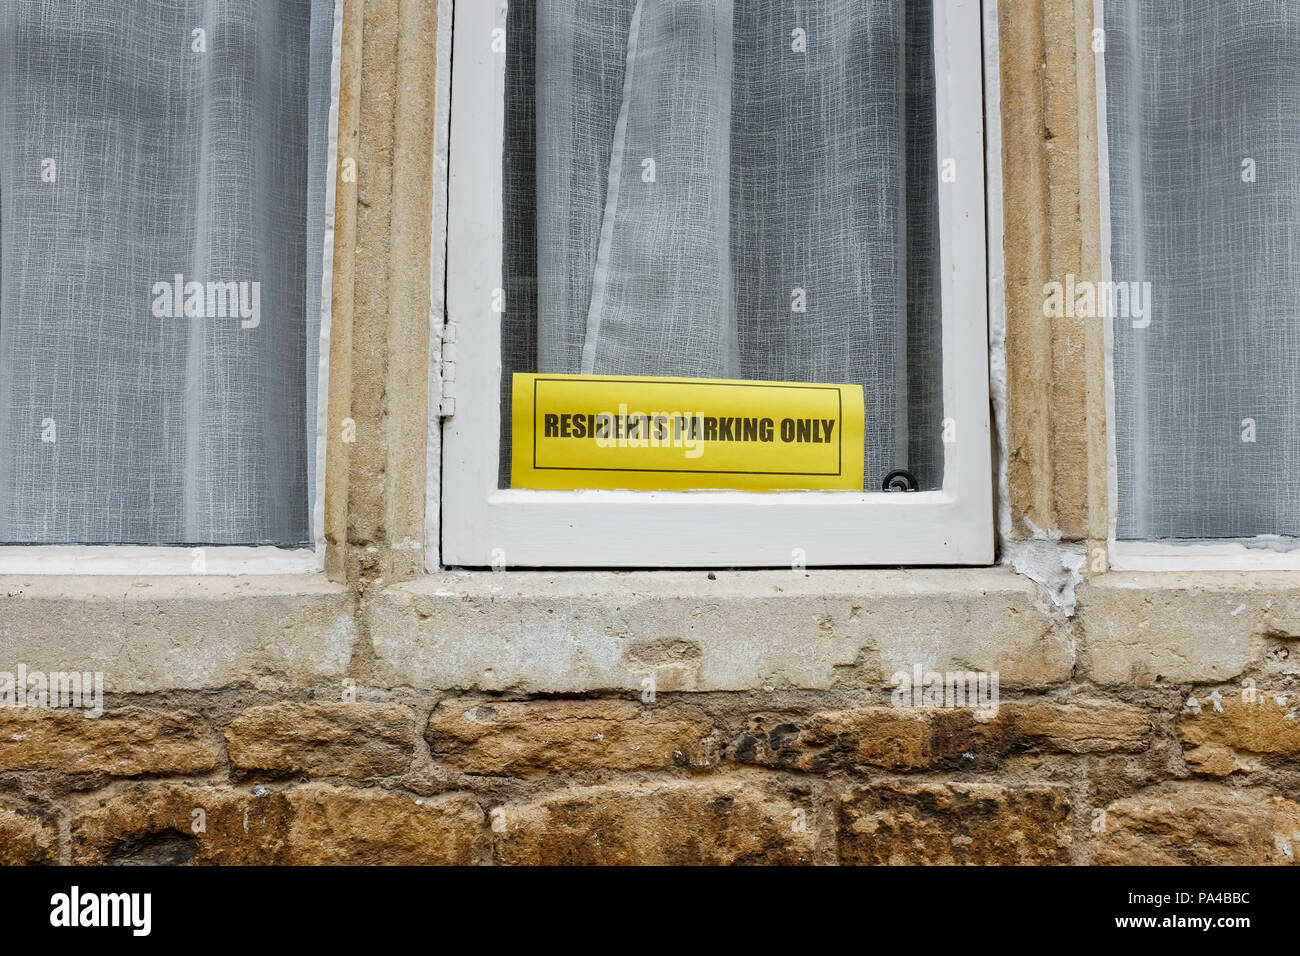 A 'residents parking only' sign in the Wiltshire village of Lacock, England. - Stock Image